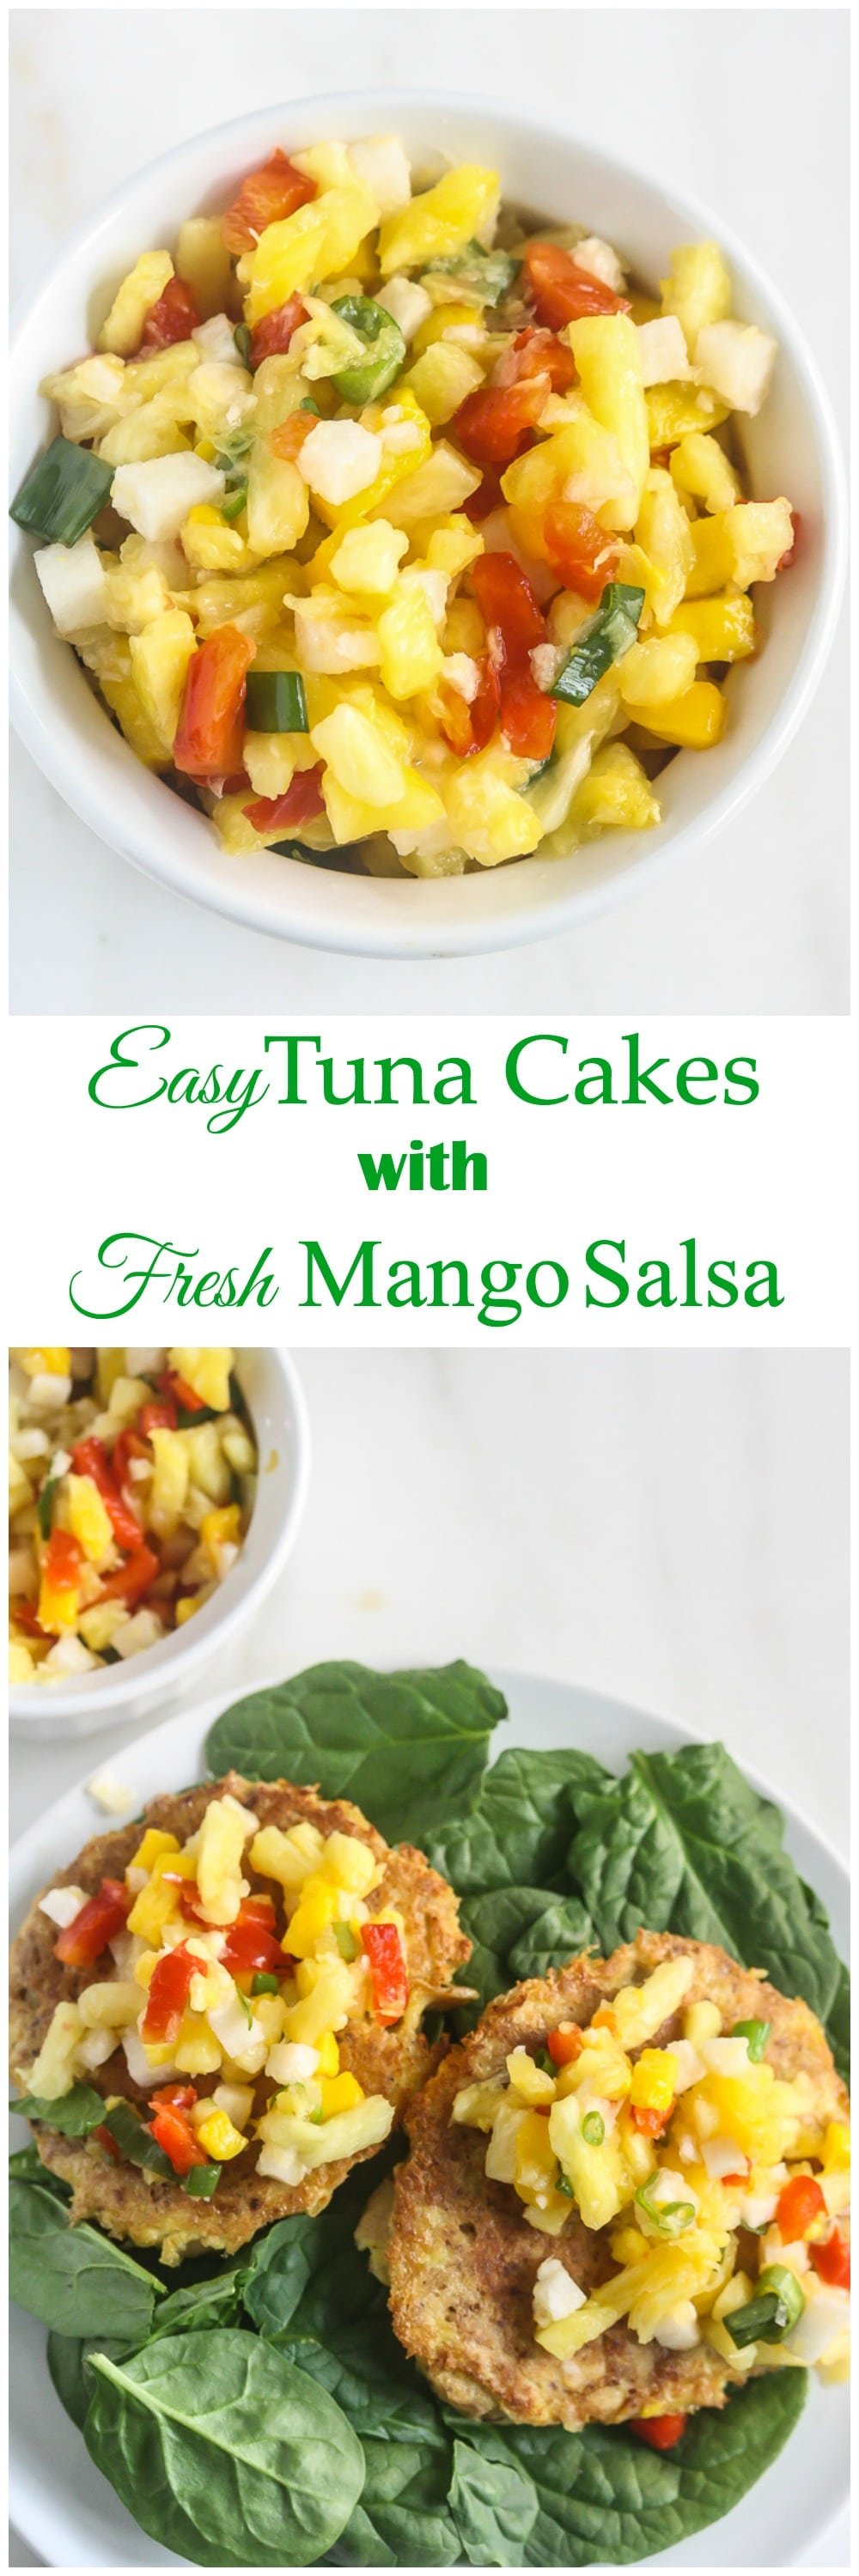 Easy Tuna Cakes with Fresh Mango Salsa